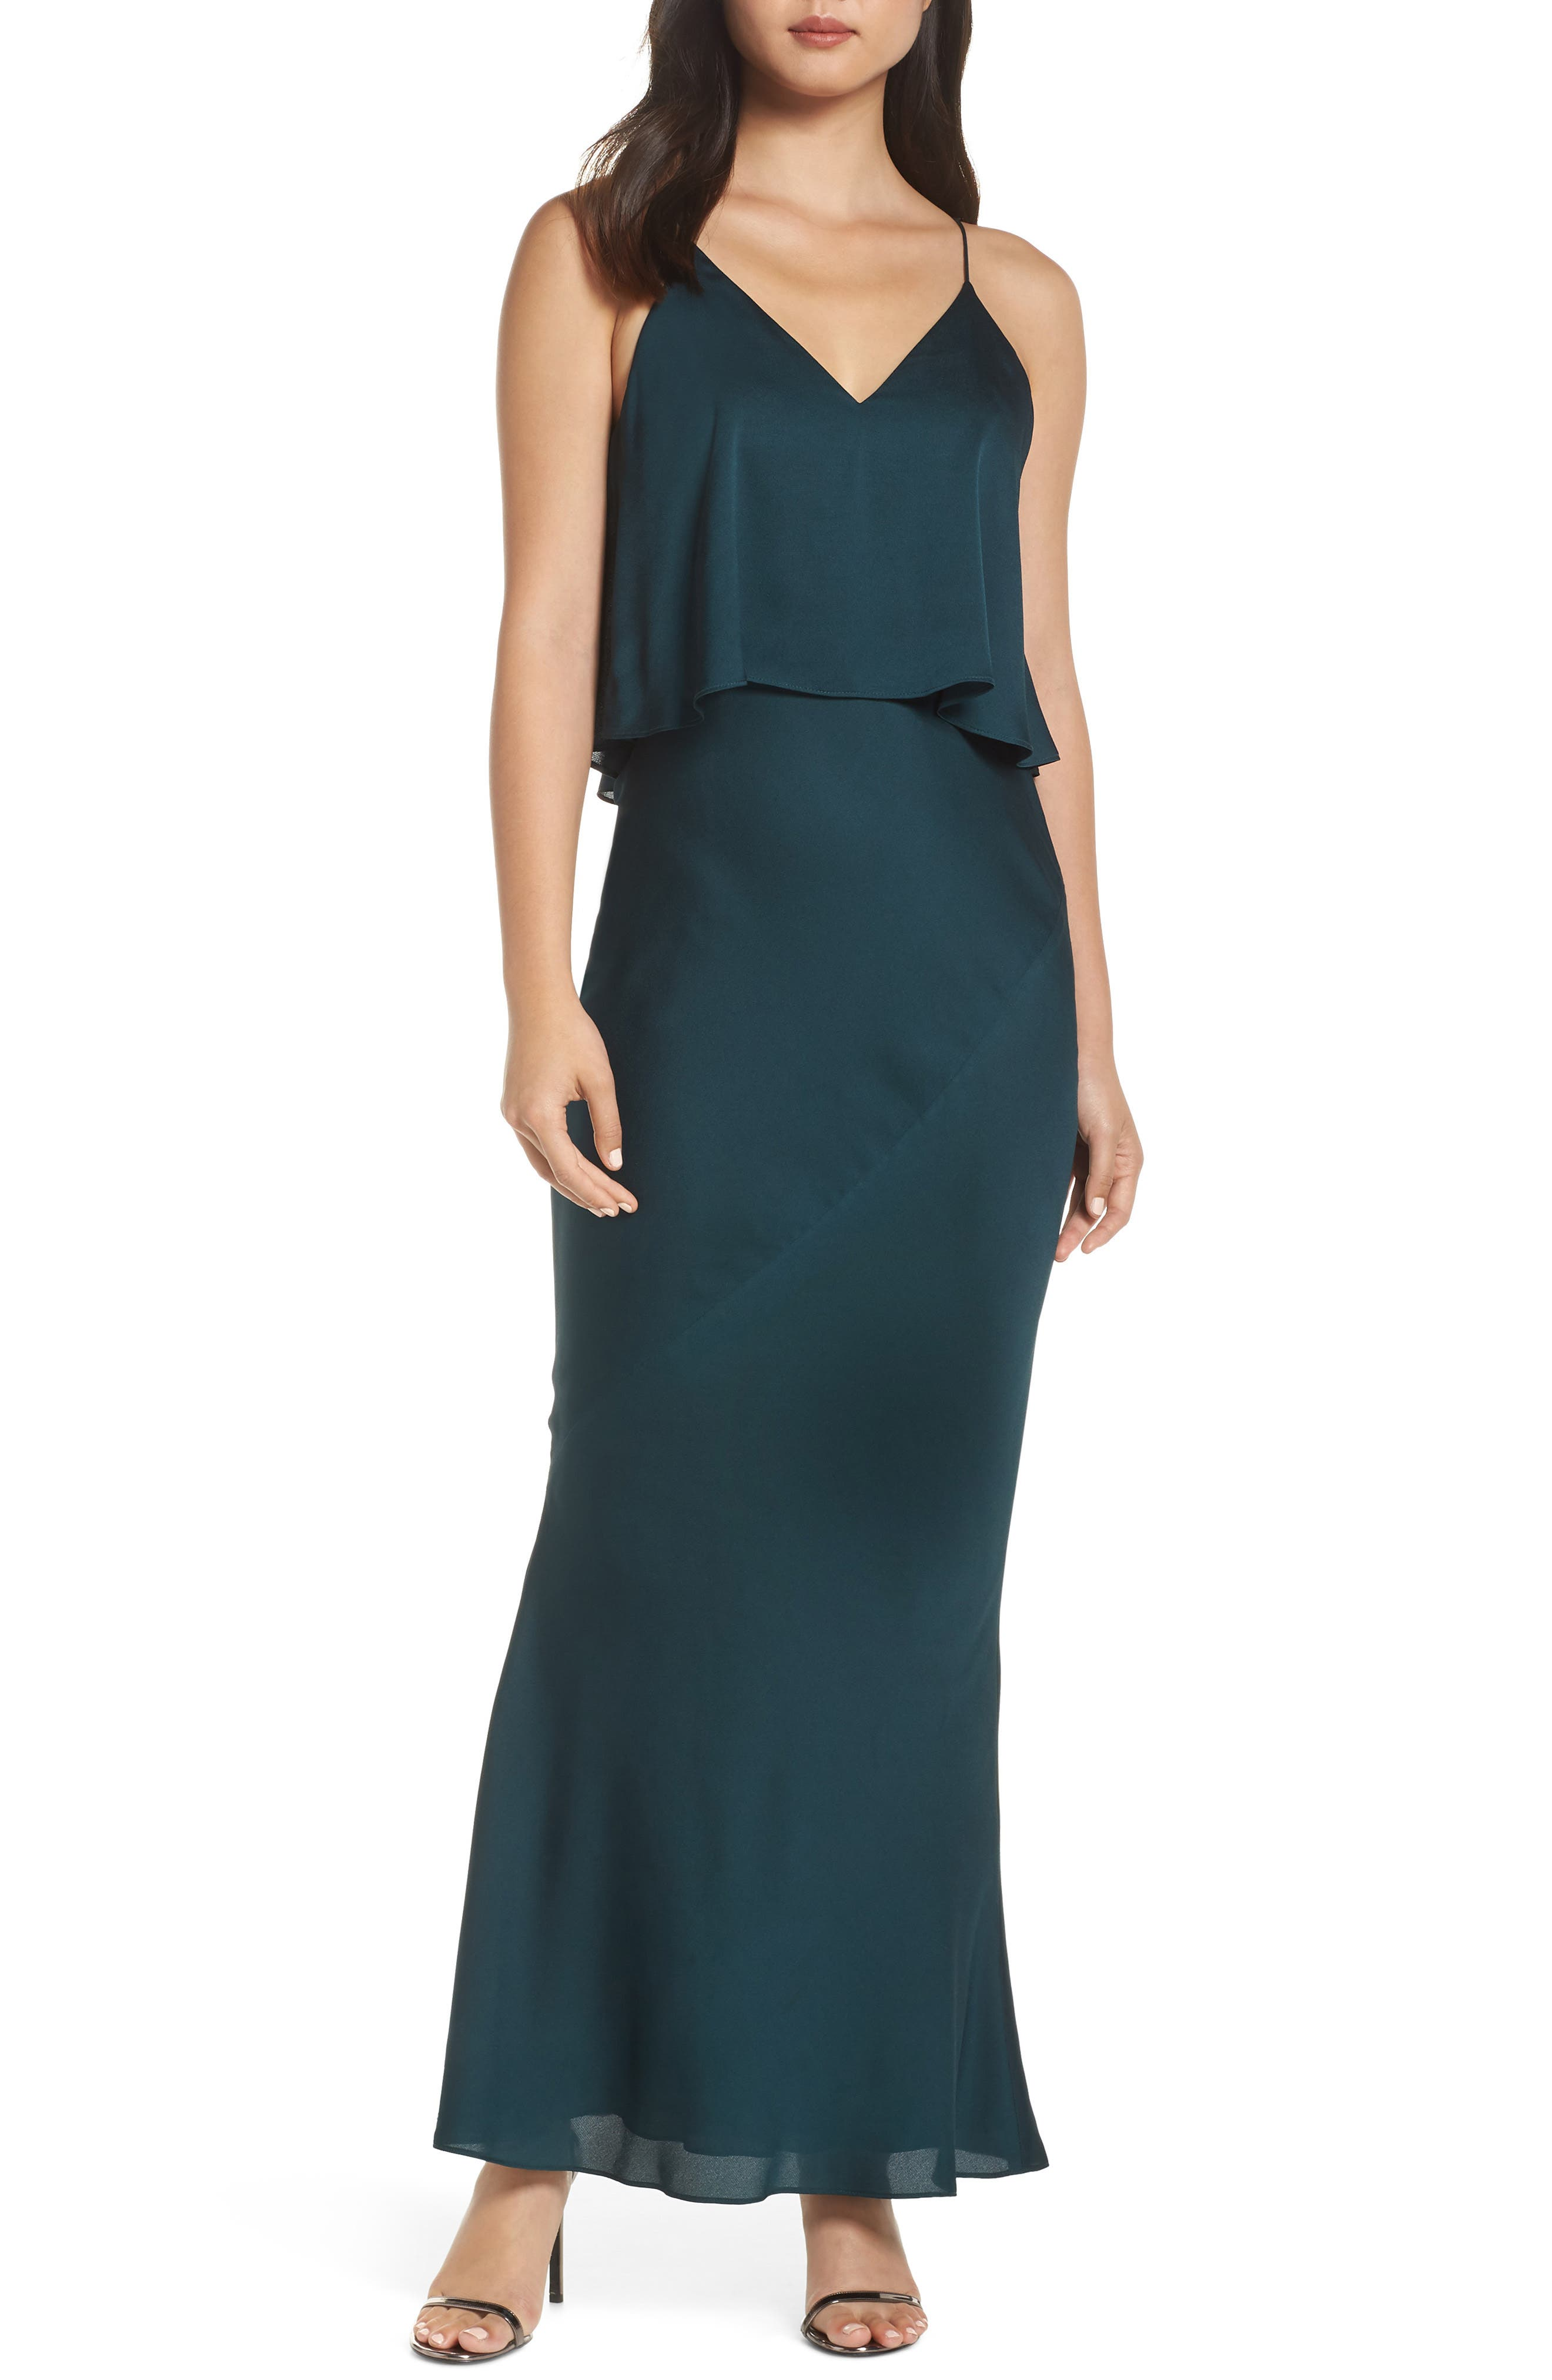 Shona Joy Luxe Frilled Bodice Bias Cut Gown